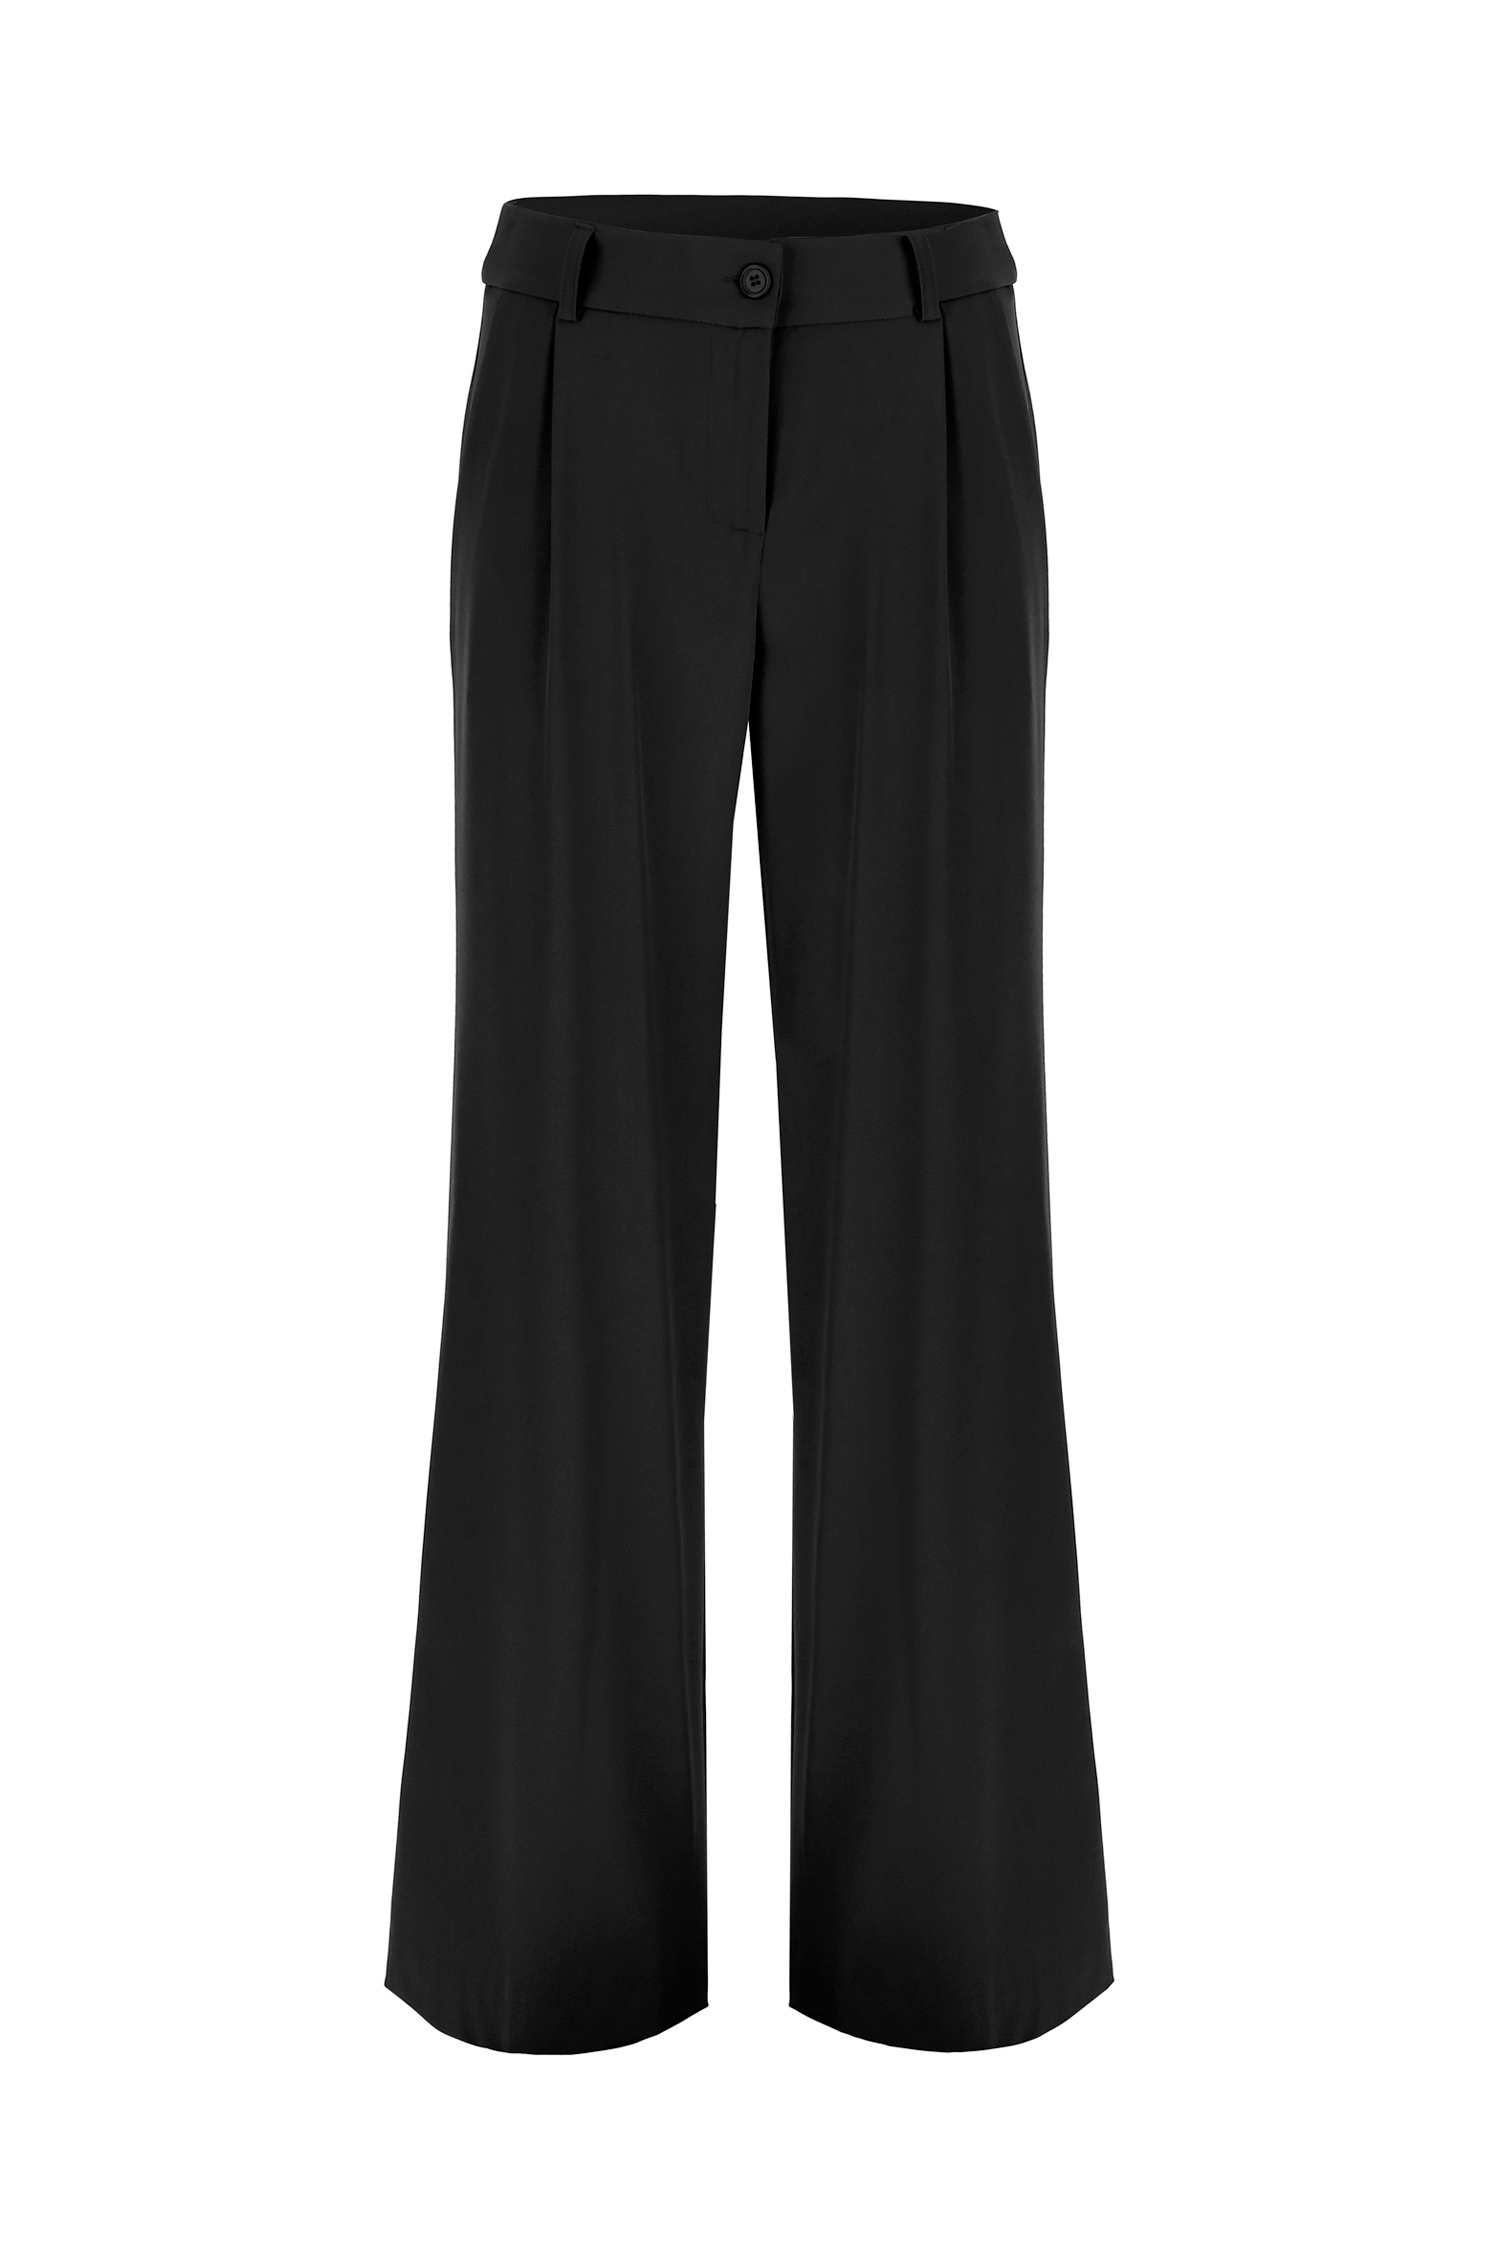 Imperial - lange brede Nero Trousers